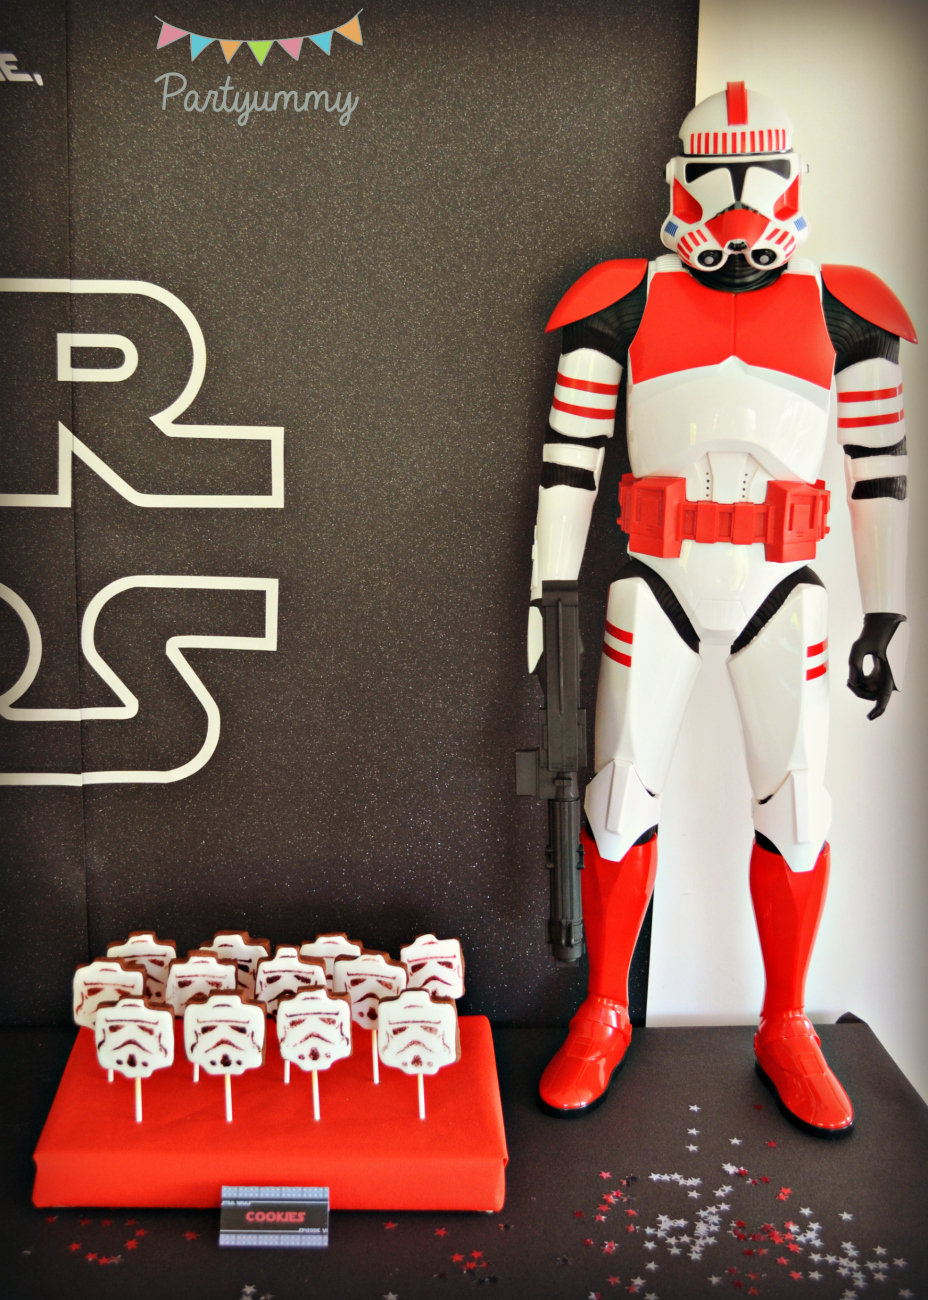 cookies-pop-stormtrooper-star-wars-jouet-toy